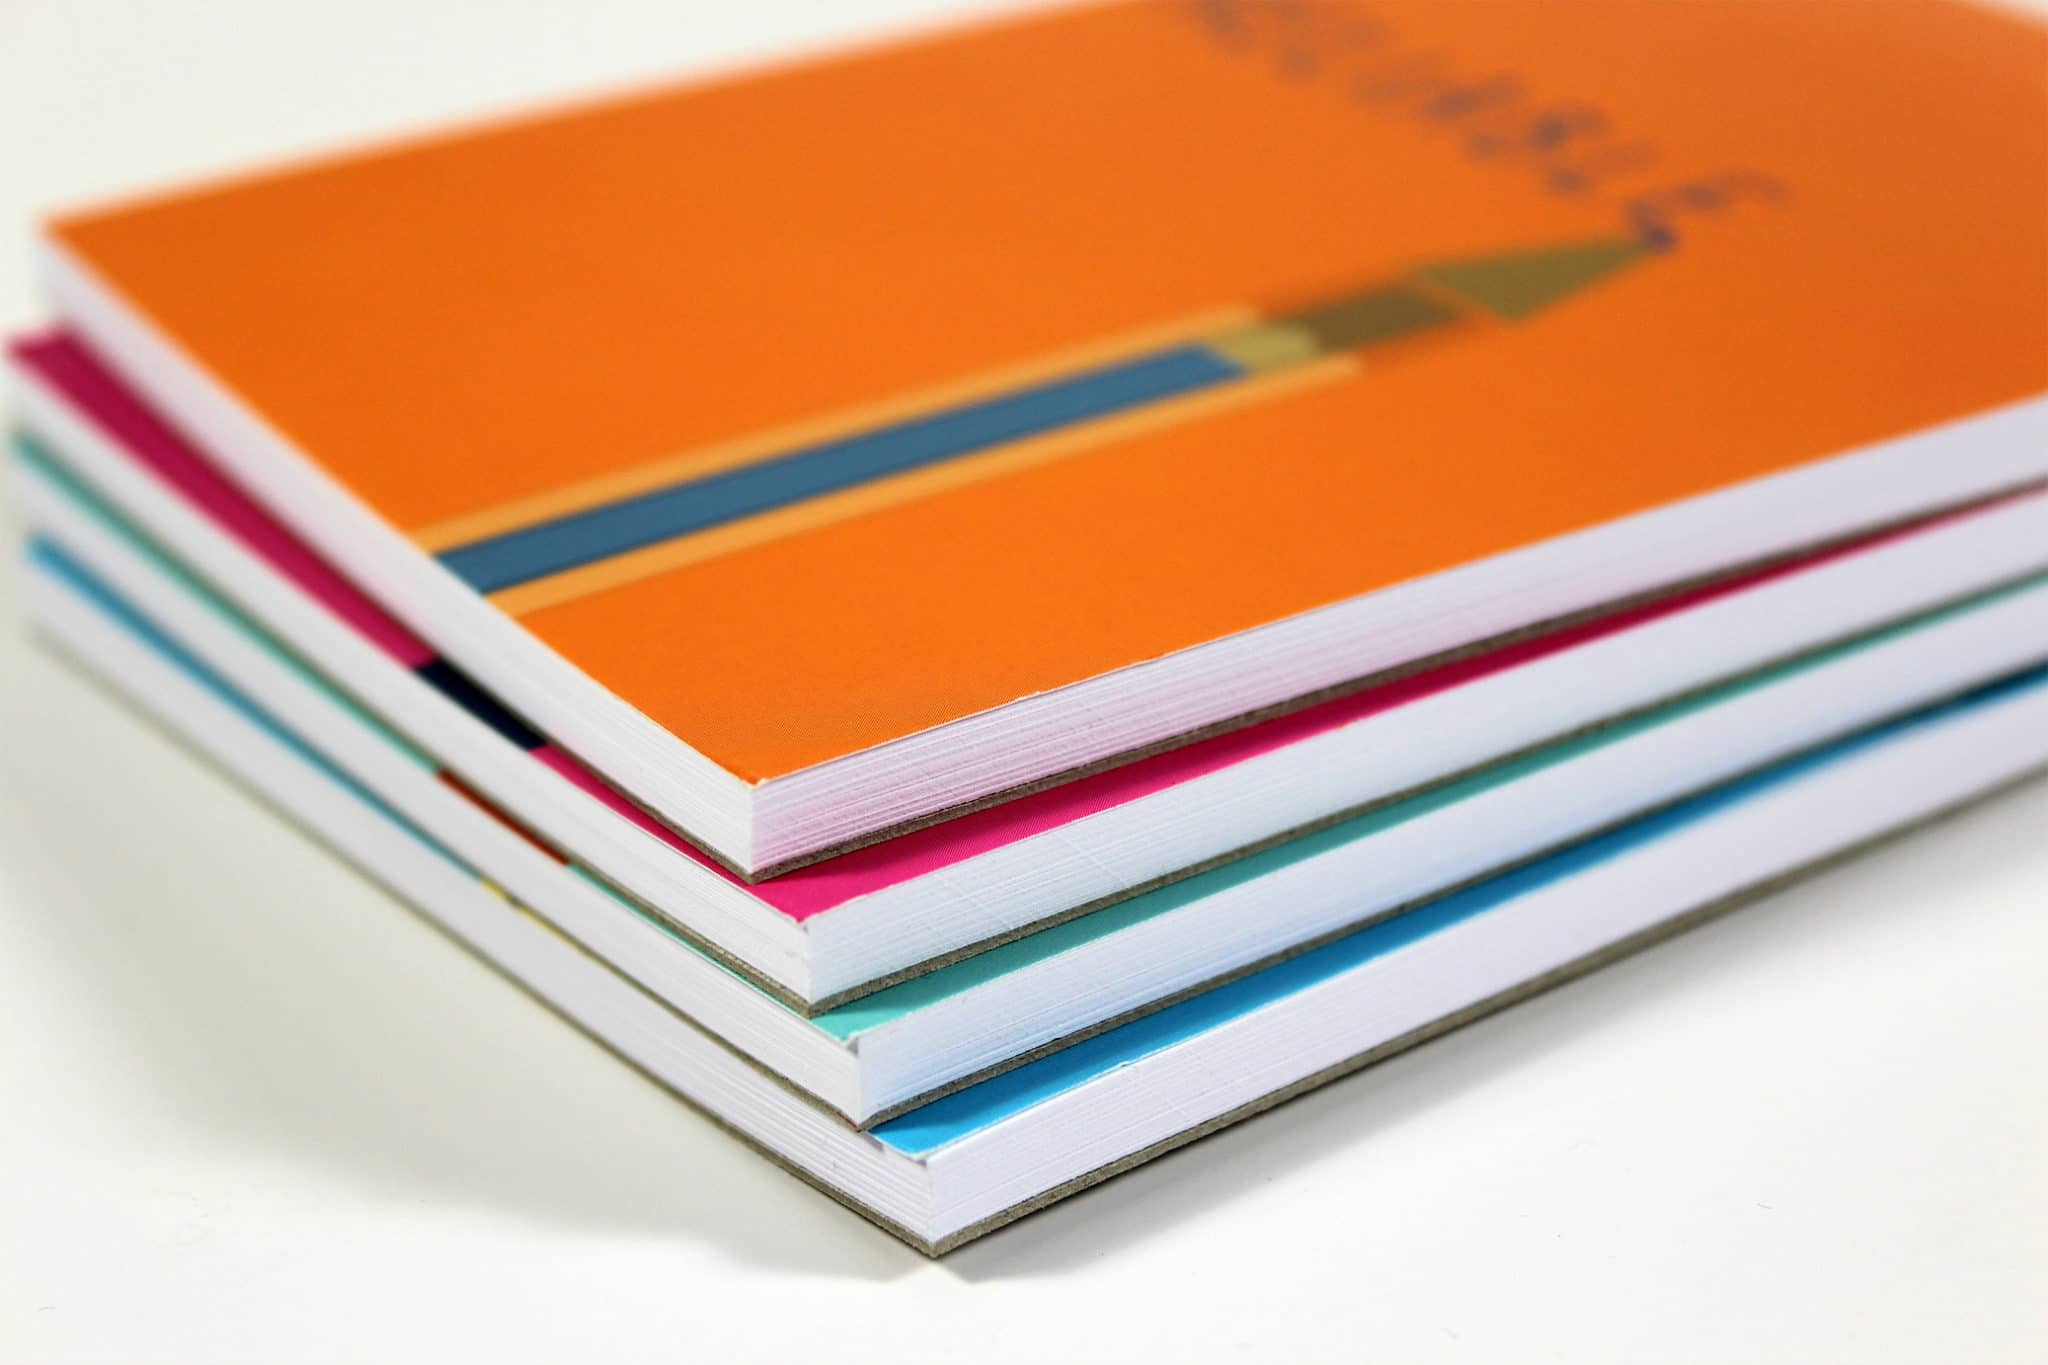 Colourful printed corporate note pads stacked on top of each other